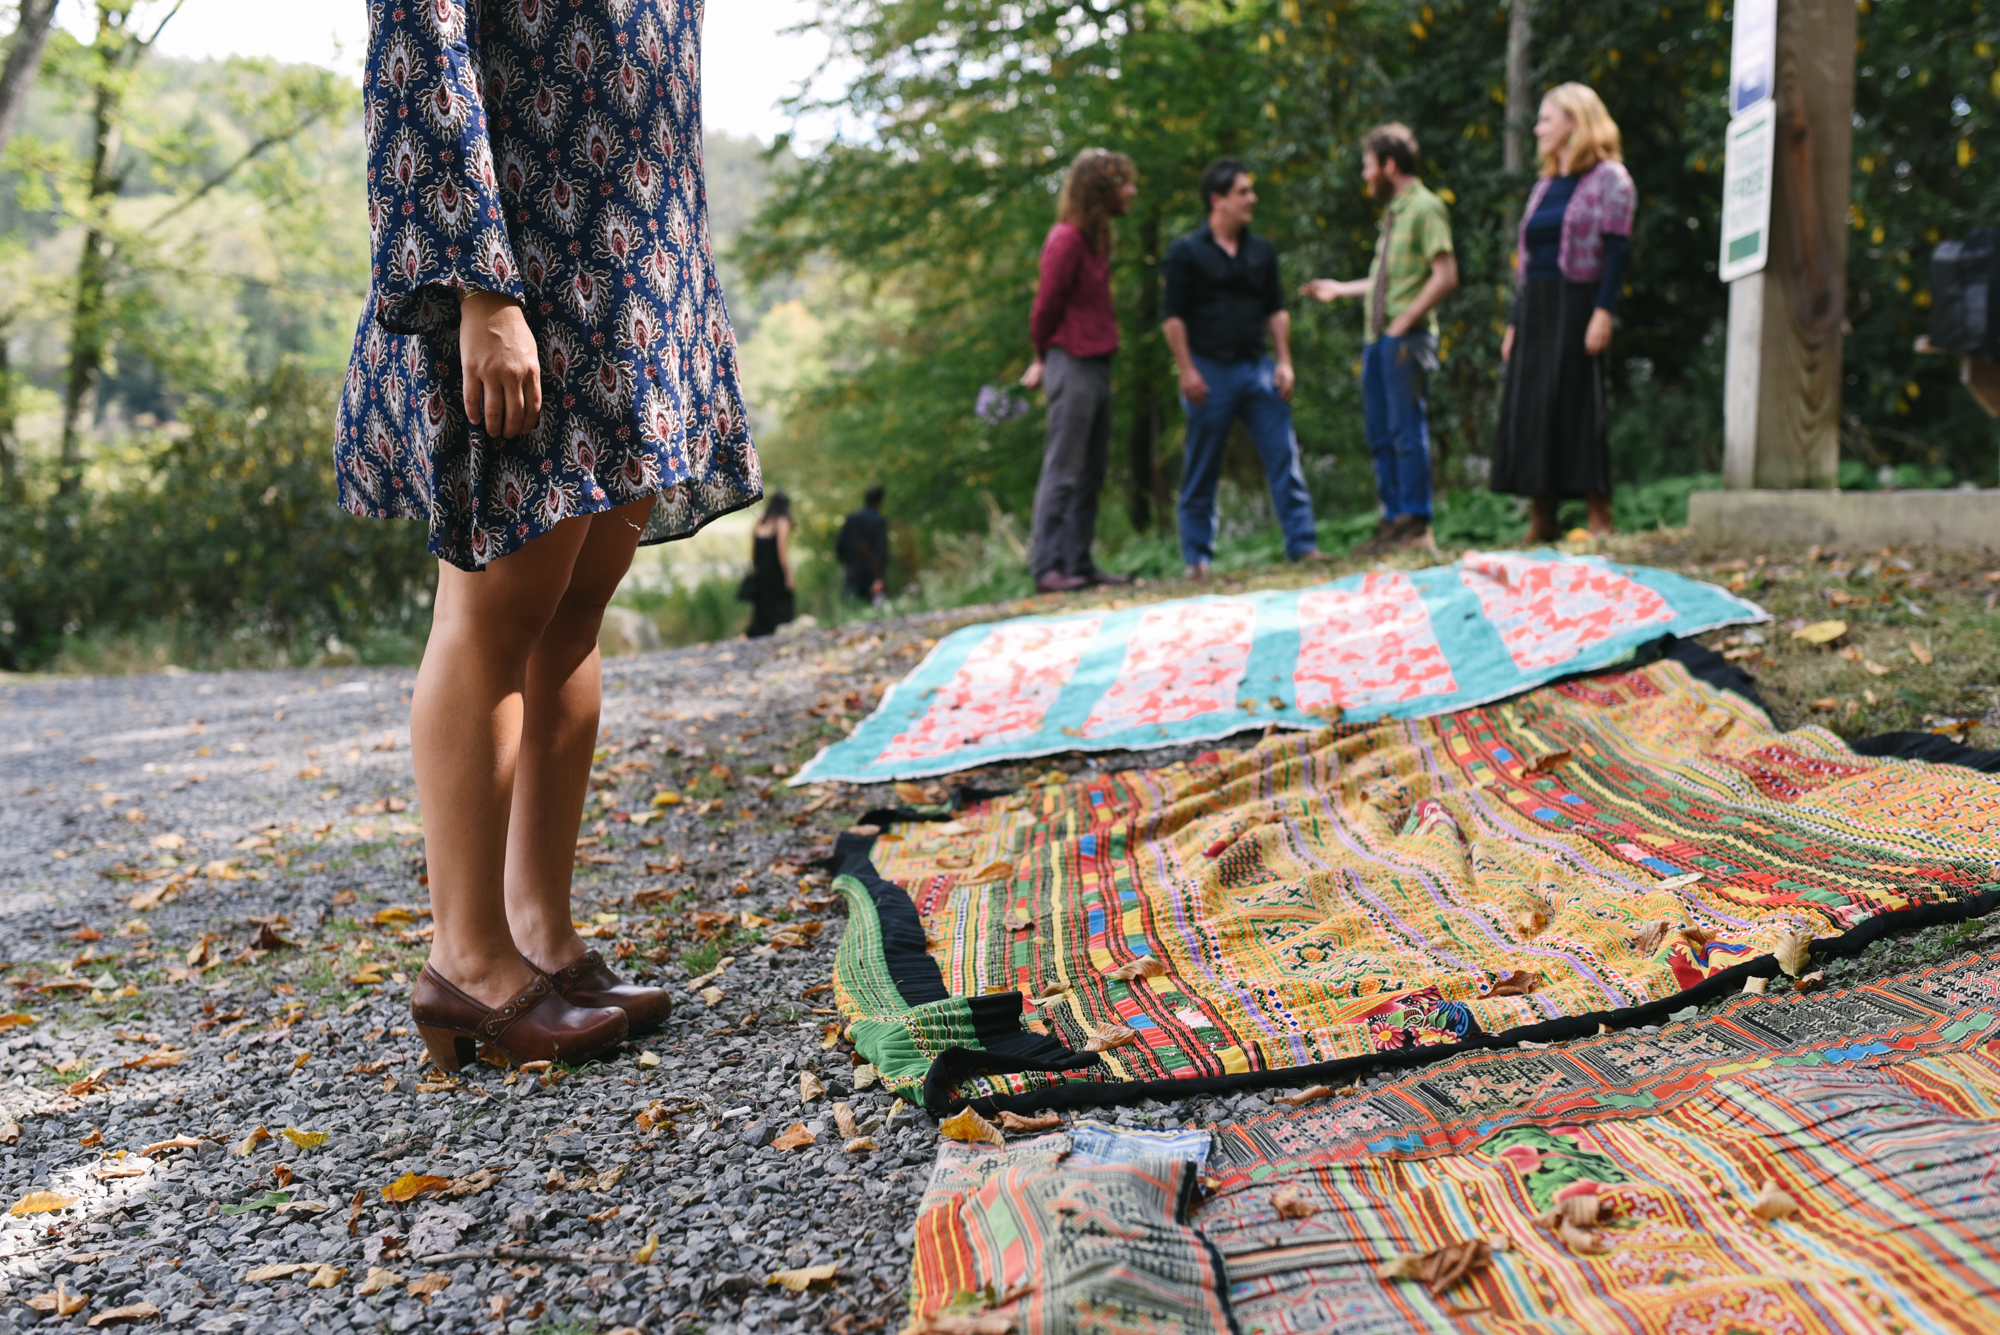 Mountain Wedding, Outdoors, Rustic, West Virginia, Maryland Wedding Photographer, DIY, Casual, Laying out colorful blankets before ceremony